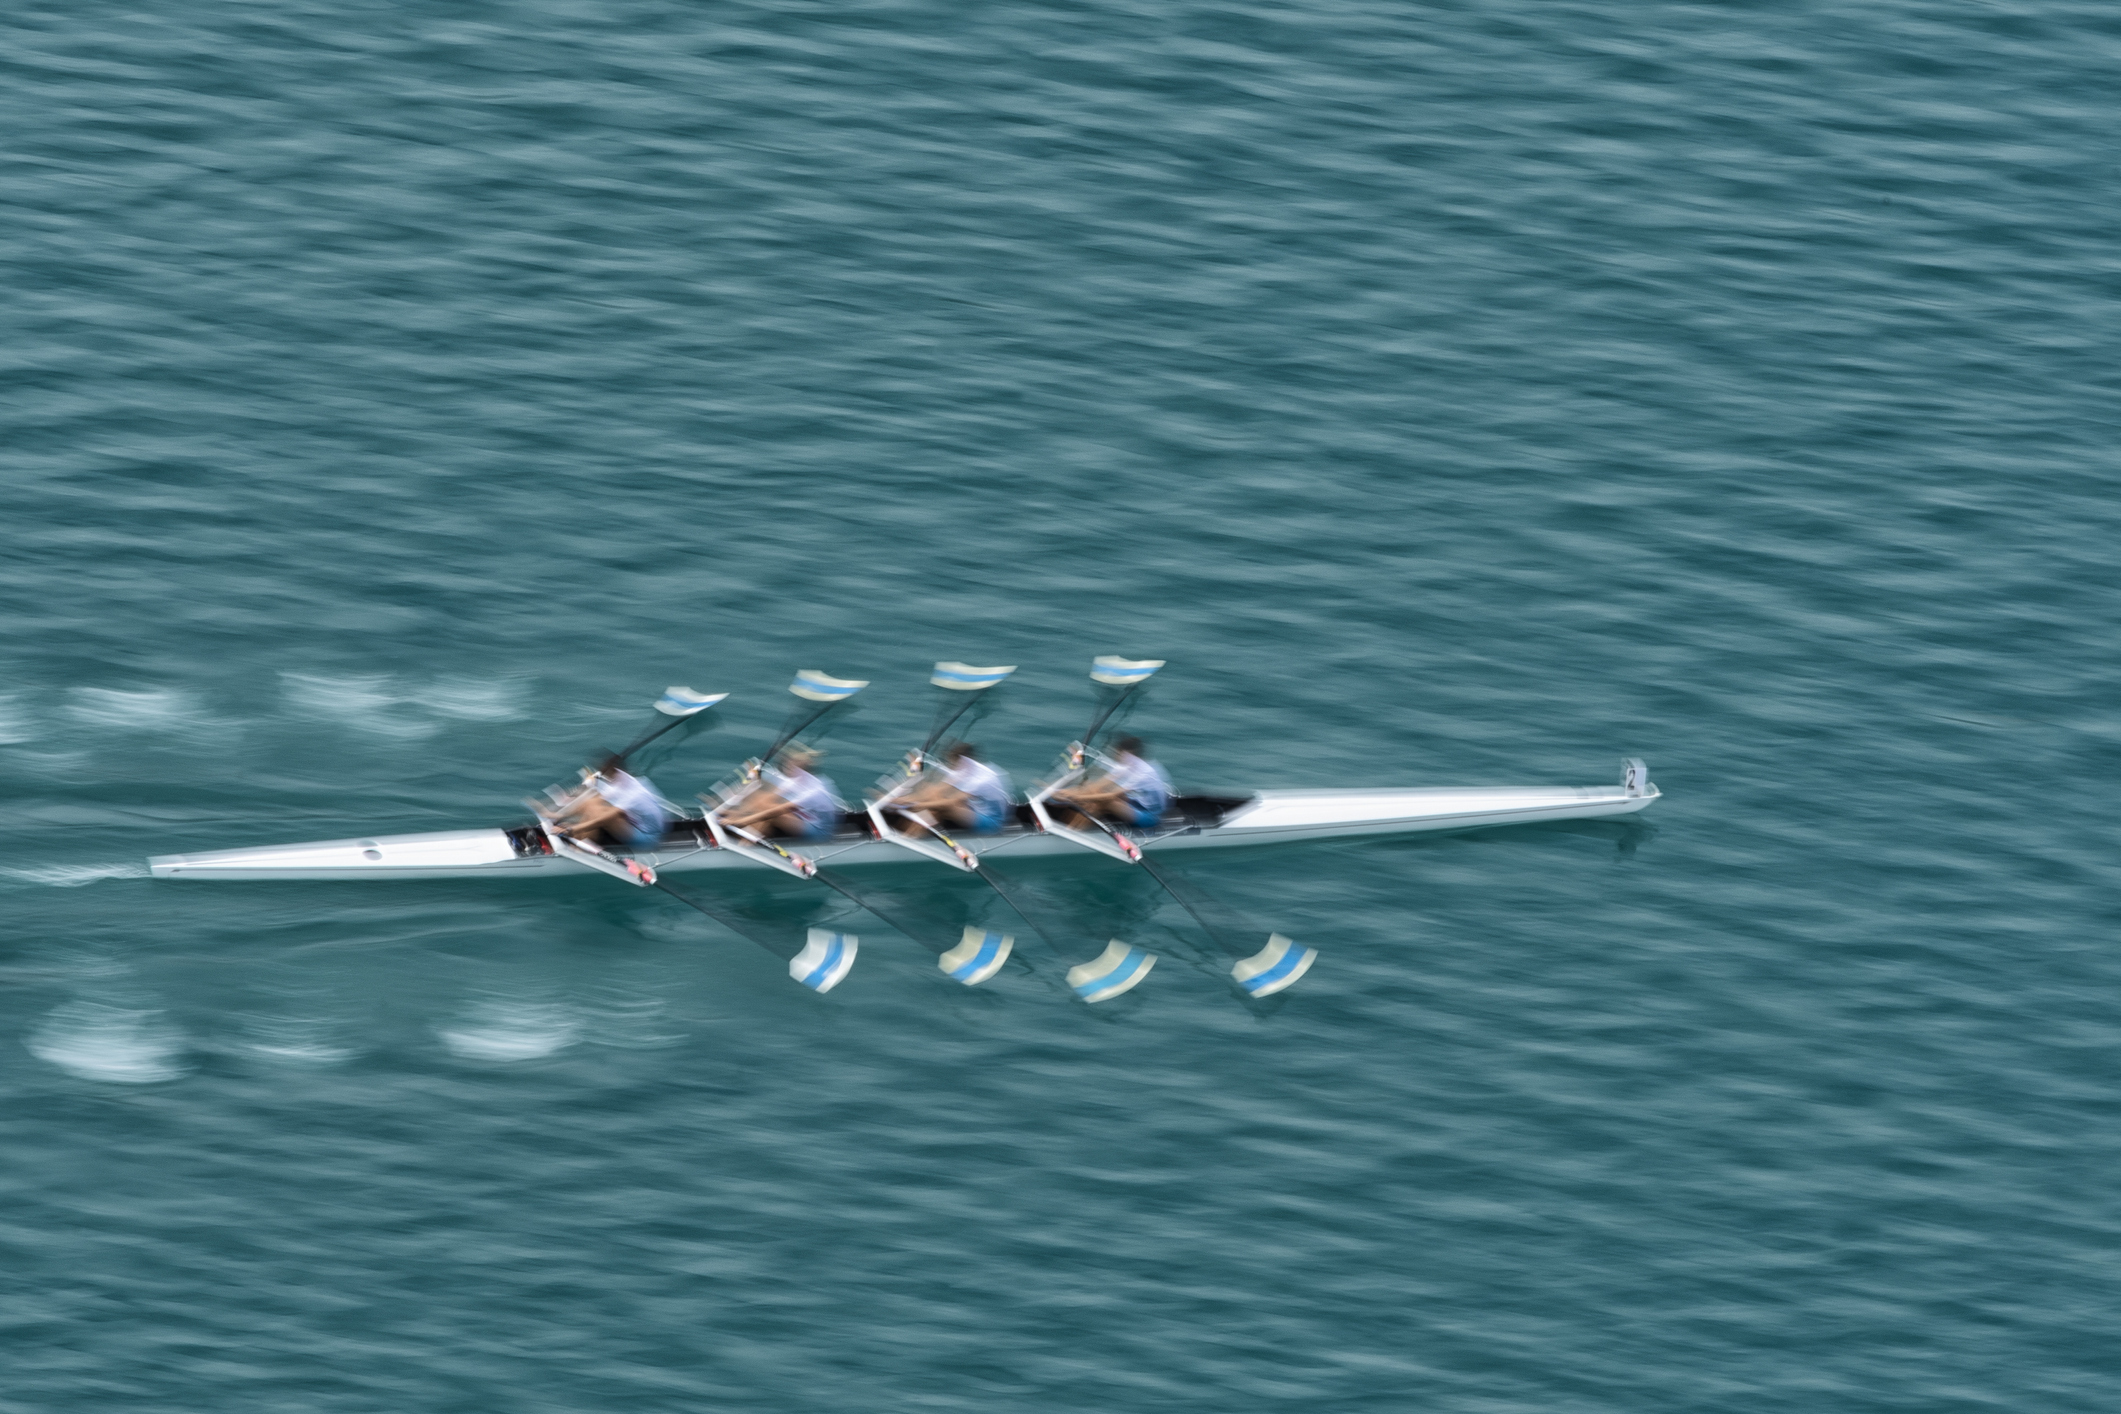 Upper view of quadruple scull rowing team on the water, blurred motion